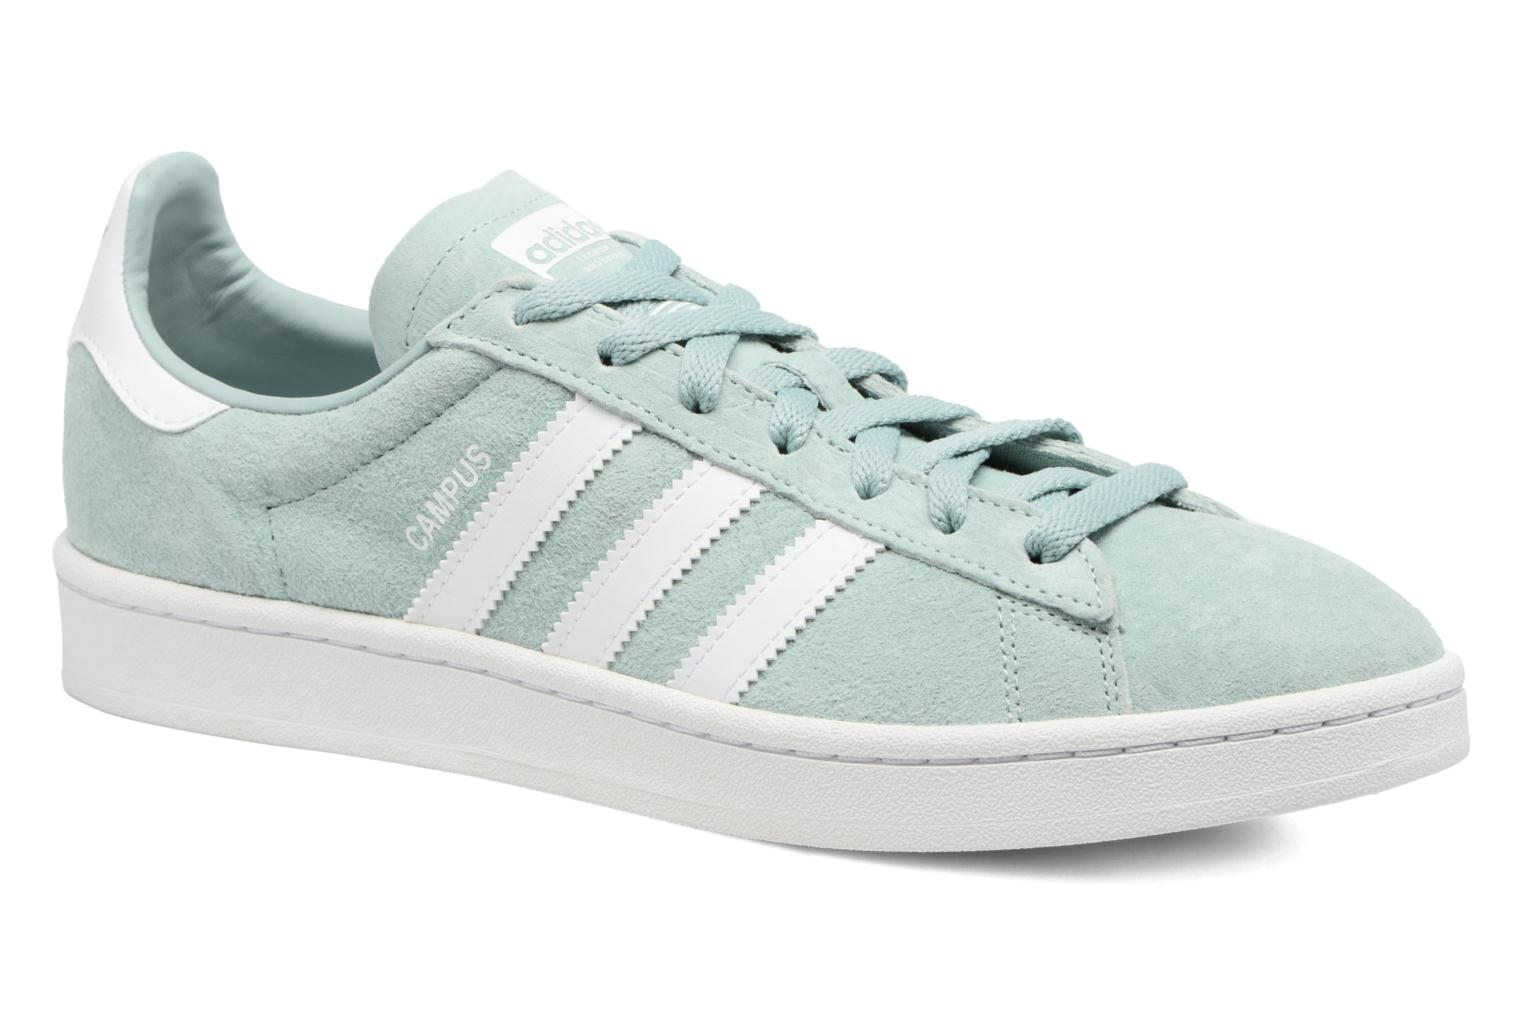 Campus by Adidas OriginalsRebajas - 30%